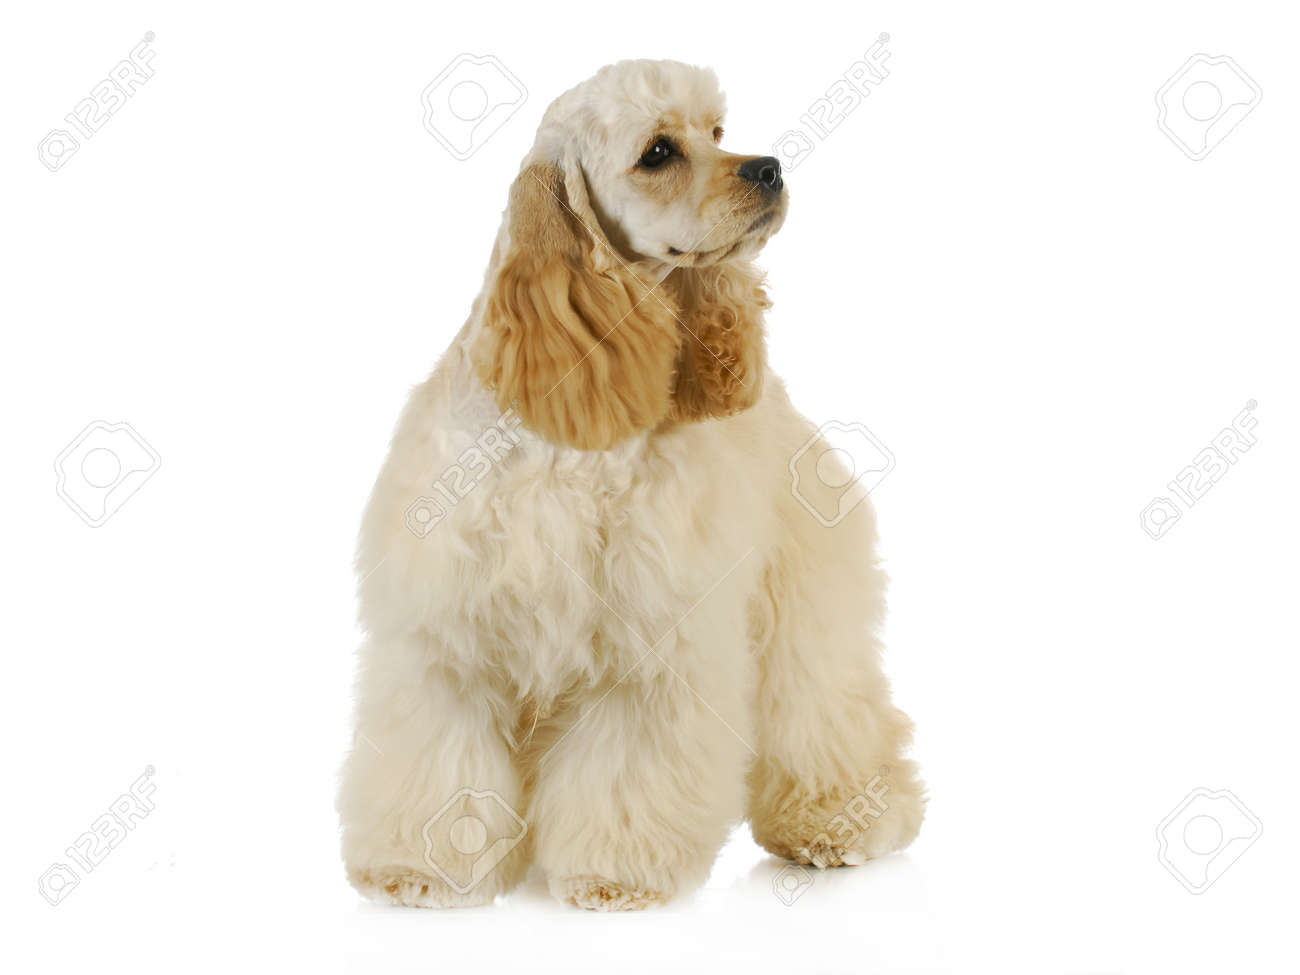 Cute Puppy American Cocker Spaniel Puppy Standing On White Stock Photo Picture And Royalty Free Image Image 15844631